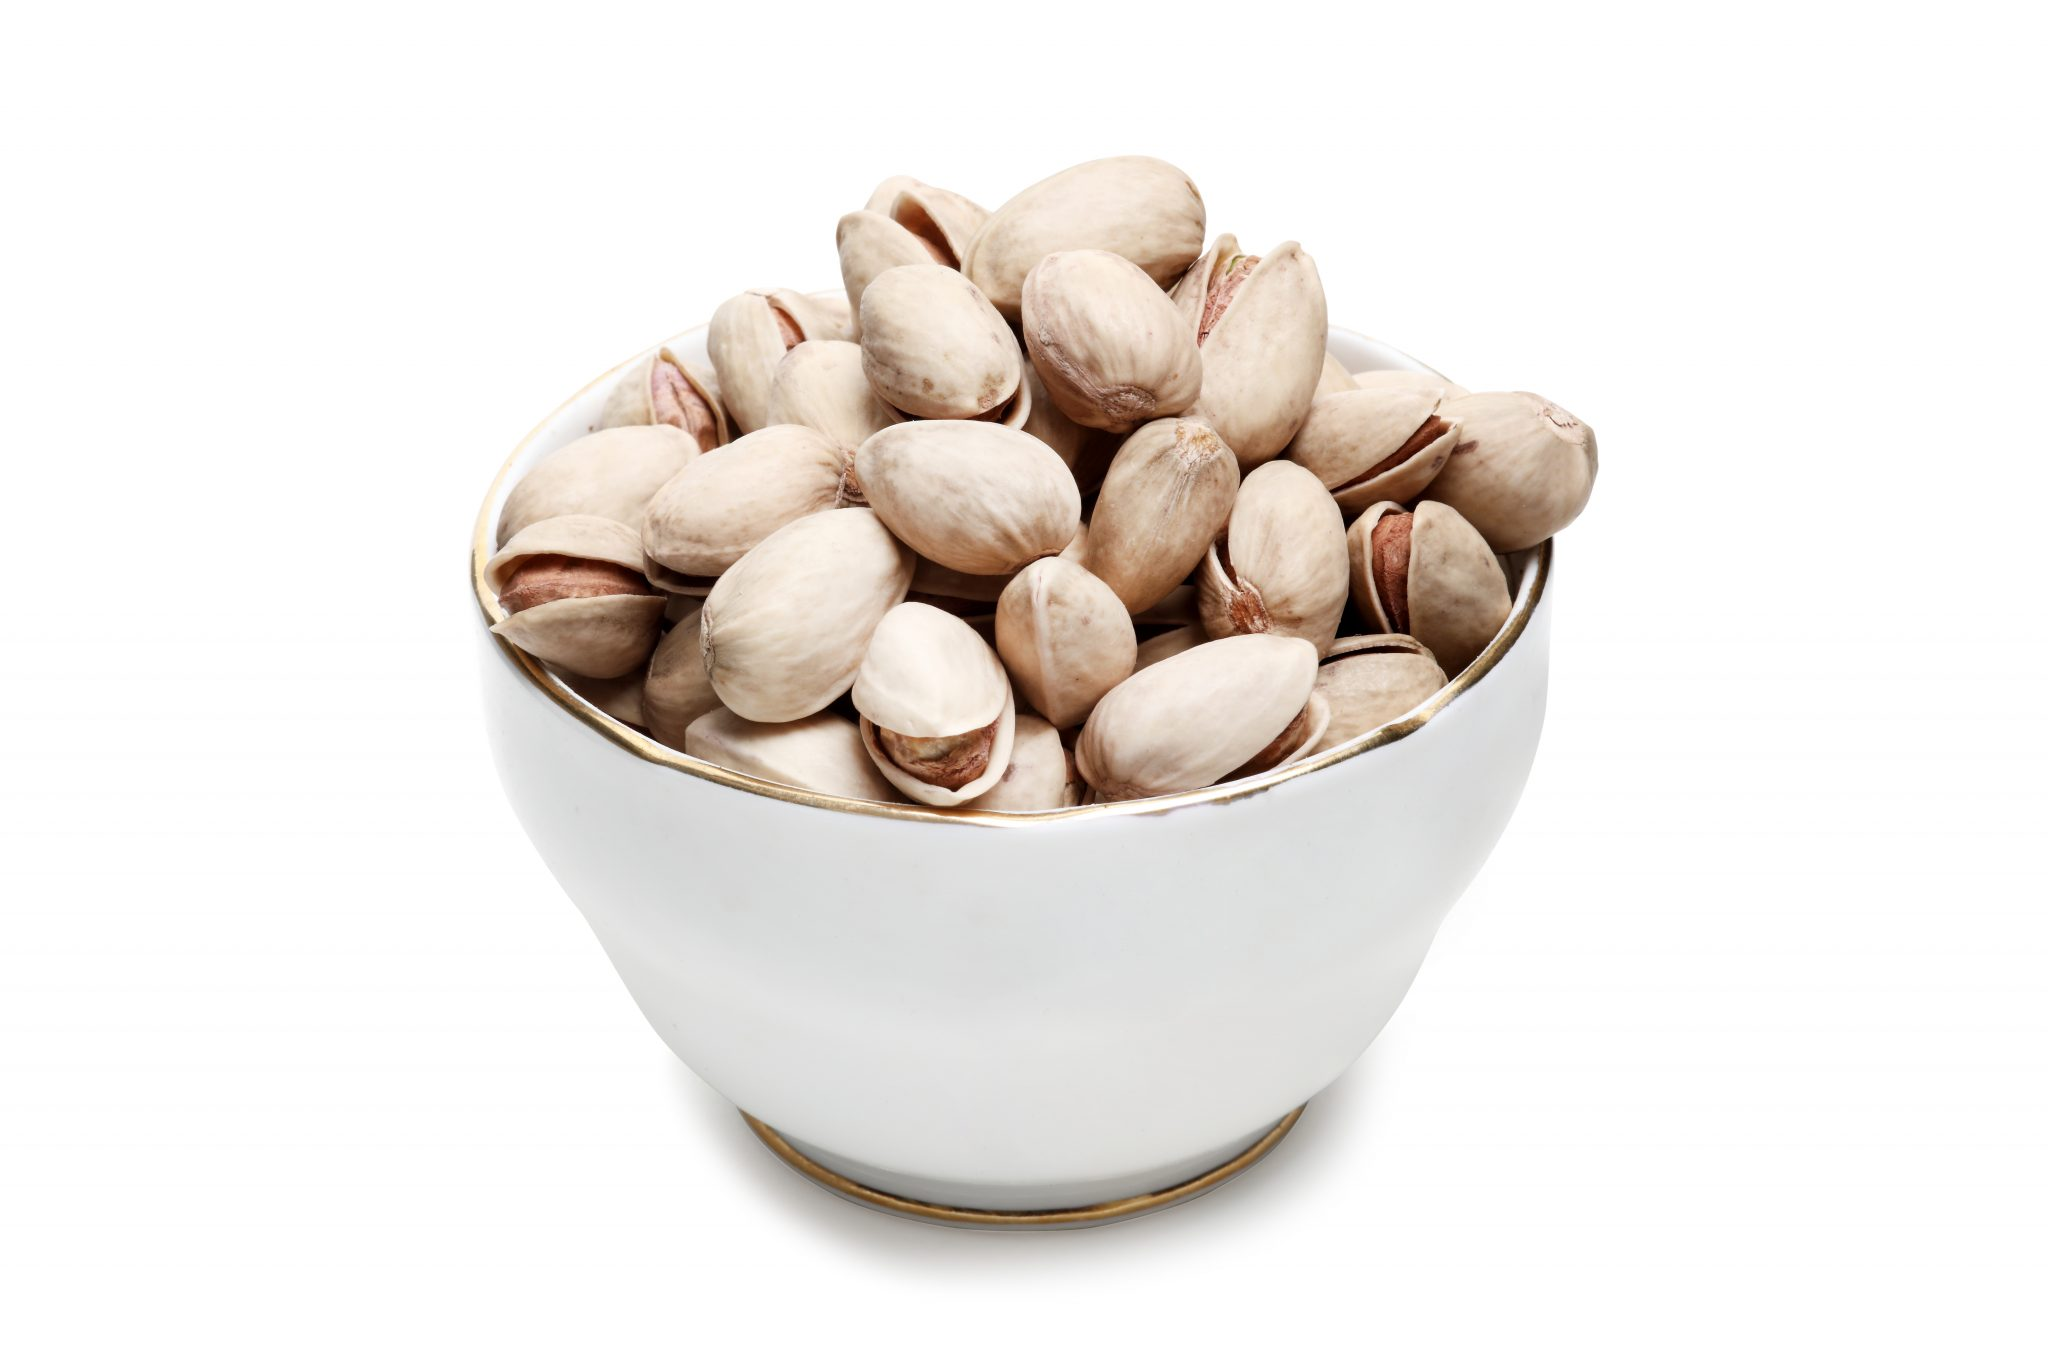 Chandras vegan snack Pistachios in shell in a glass bowl